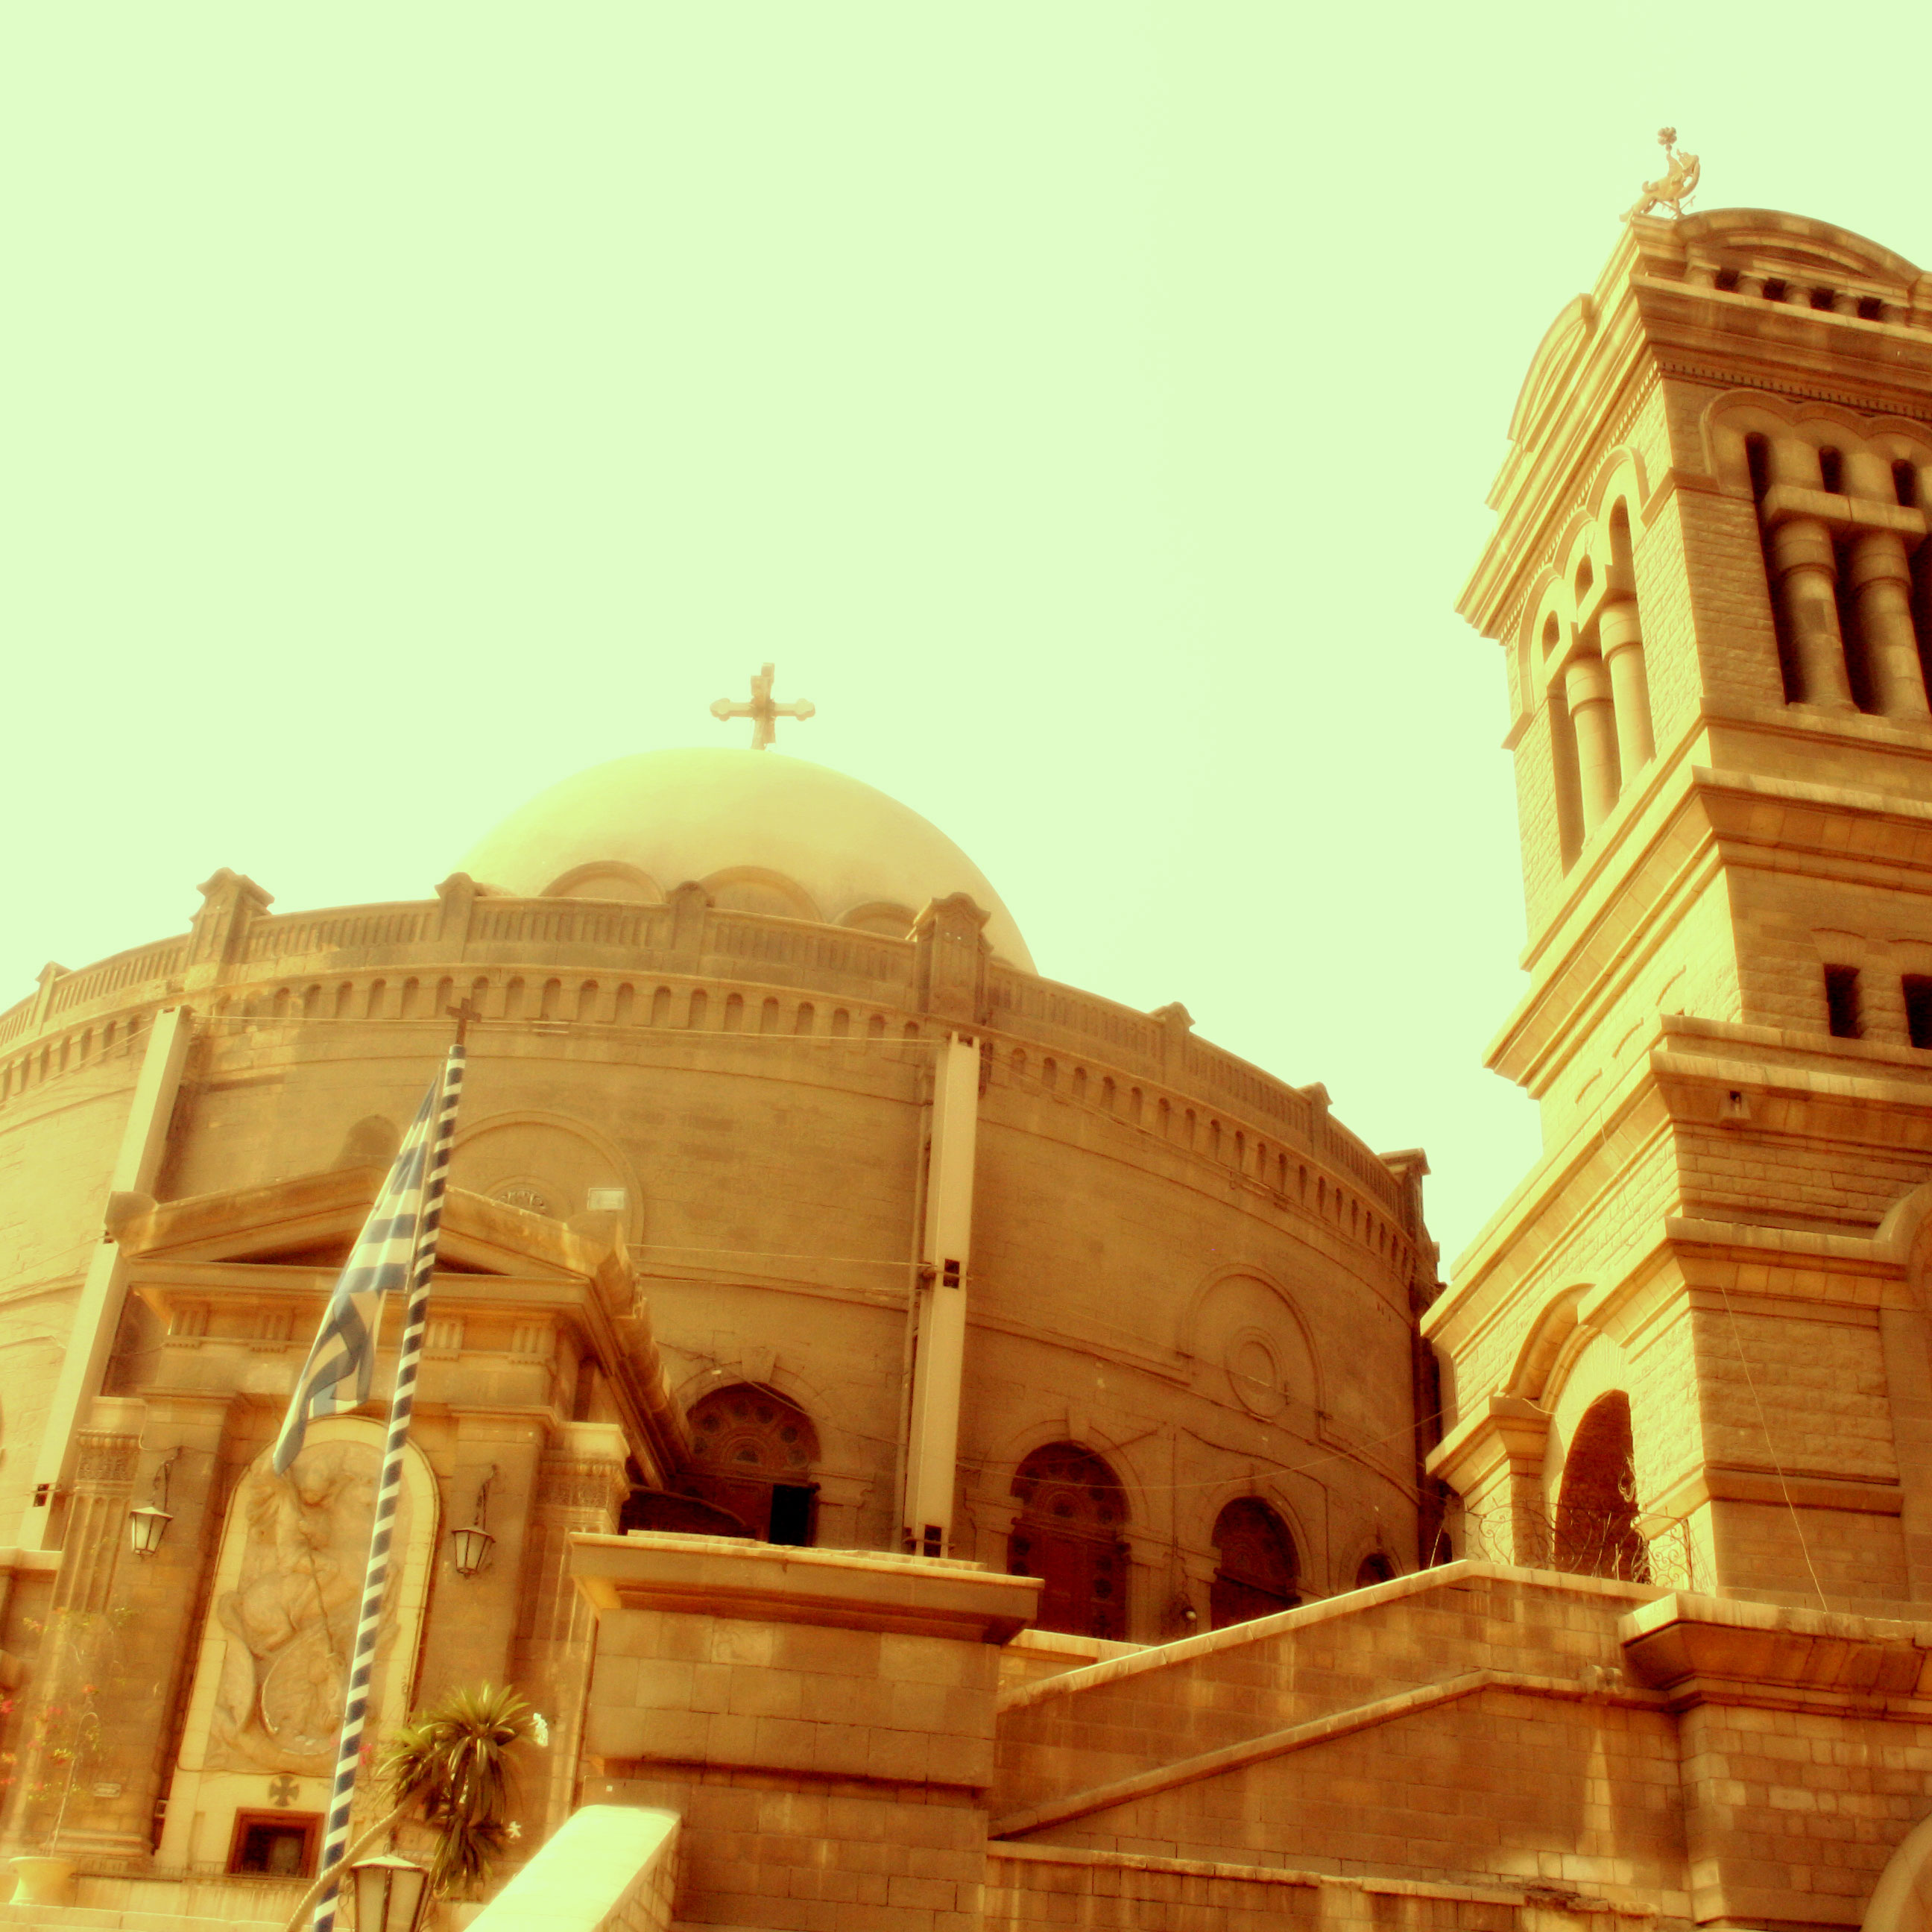 St._George_greek_coptic_church_Old_Cairo_Egypt21